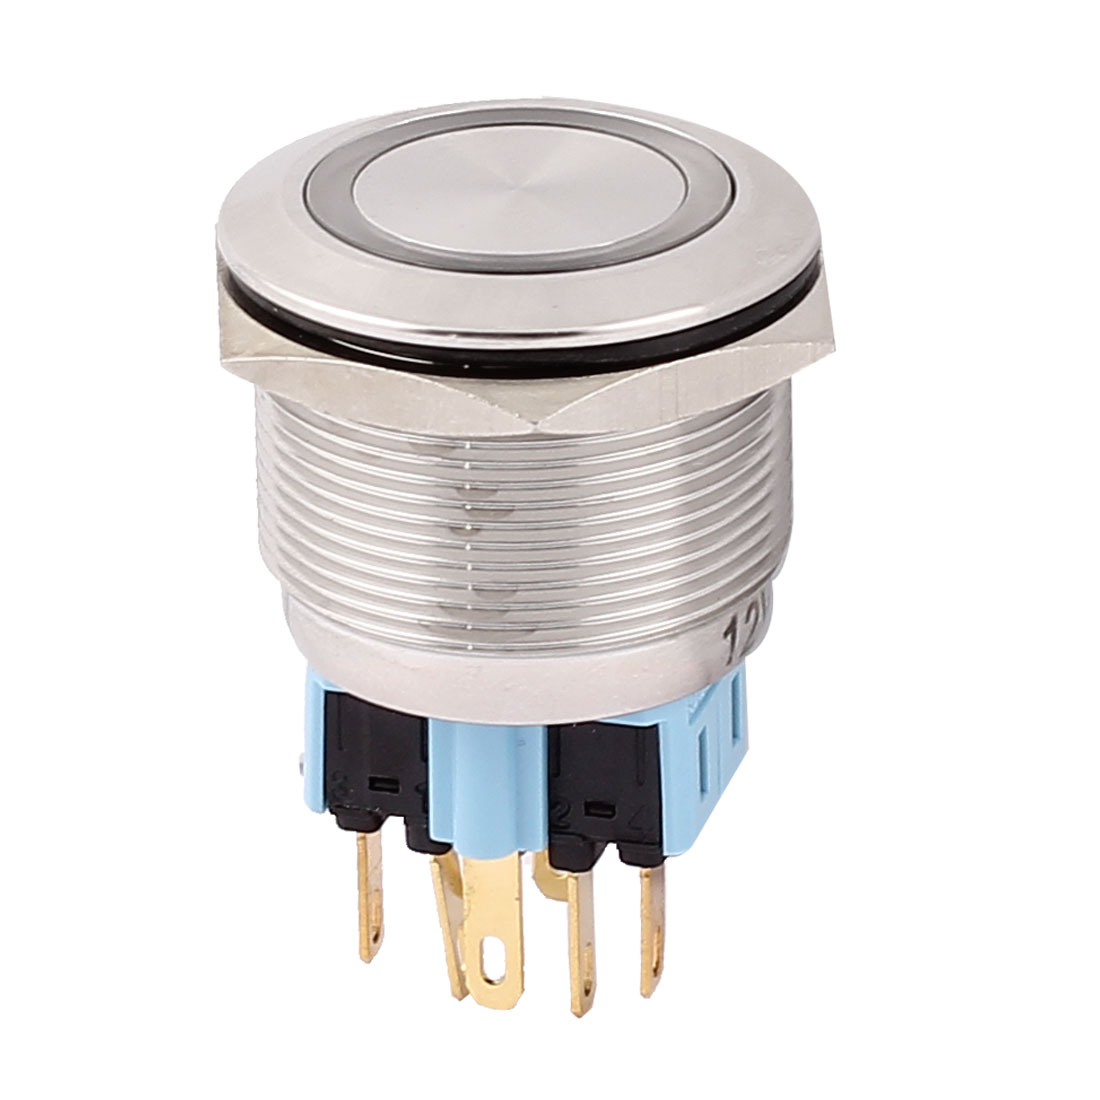 DC 12V White LED Light 25mm Mounted Thread 6 Pins DPST NO/NC Momentary Push Button Switch